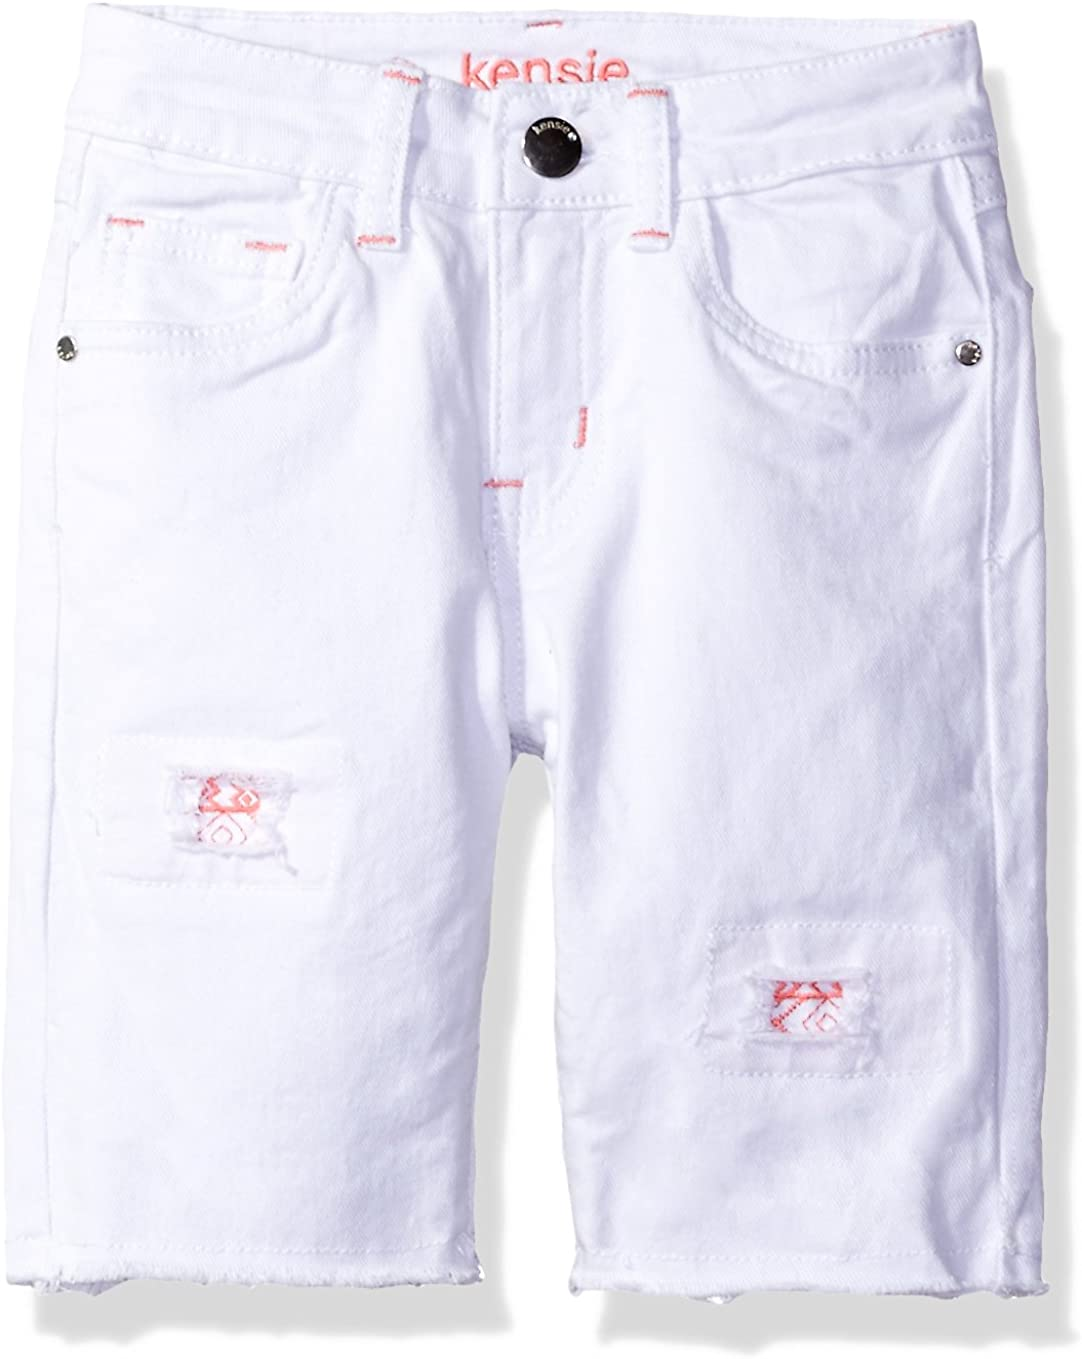 kensie Girls' Casual Max 66% OFF Short Available Popular brand More Styles